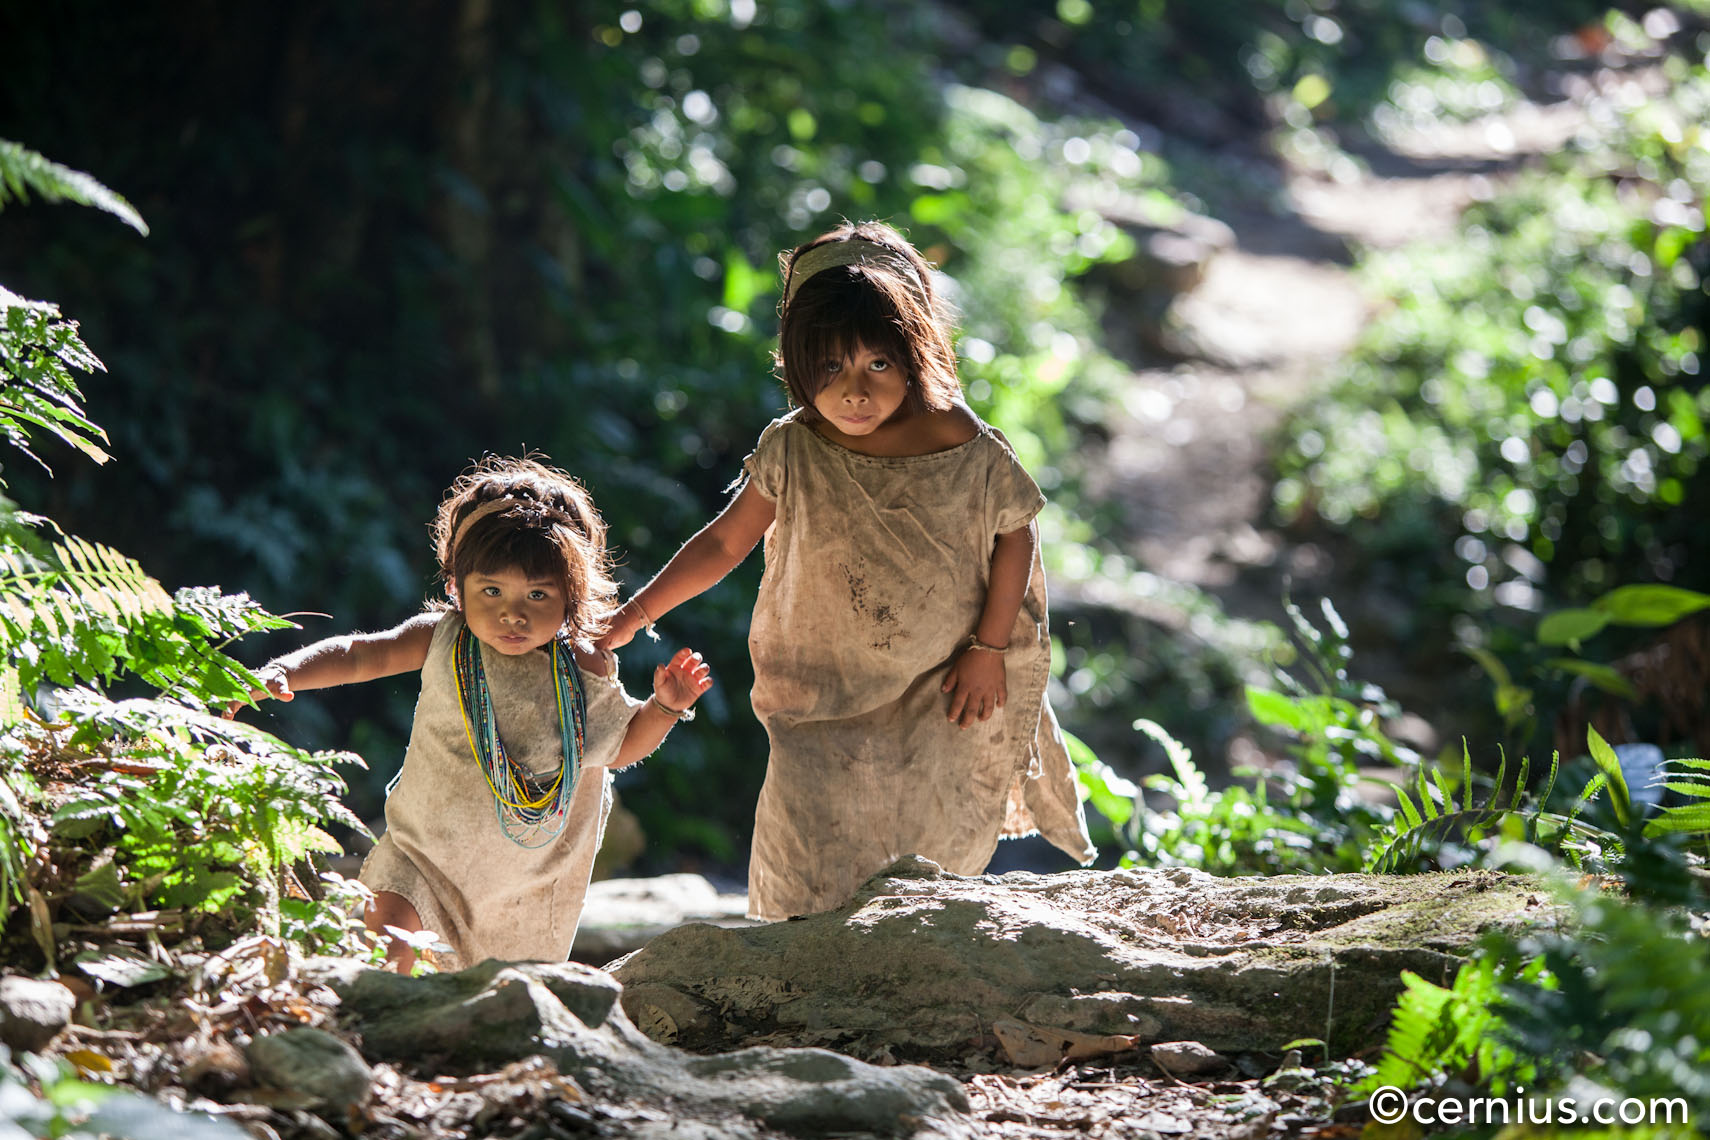 Indigenous children walk a path near the Ciduad Perdida (the Lost City) of Colombia, 2012 | Juozas Cernius